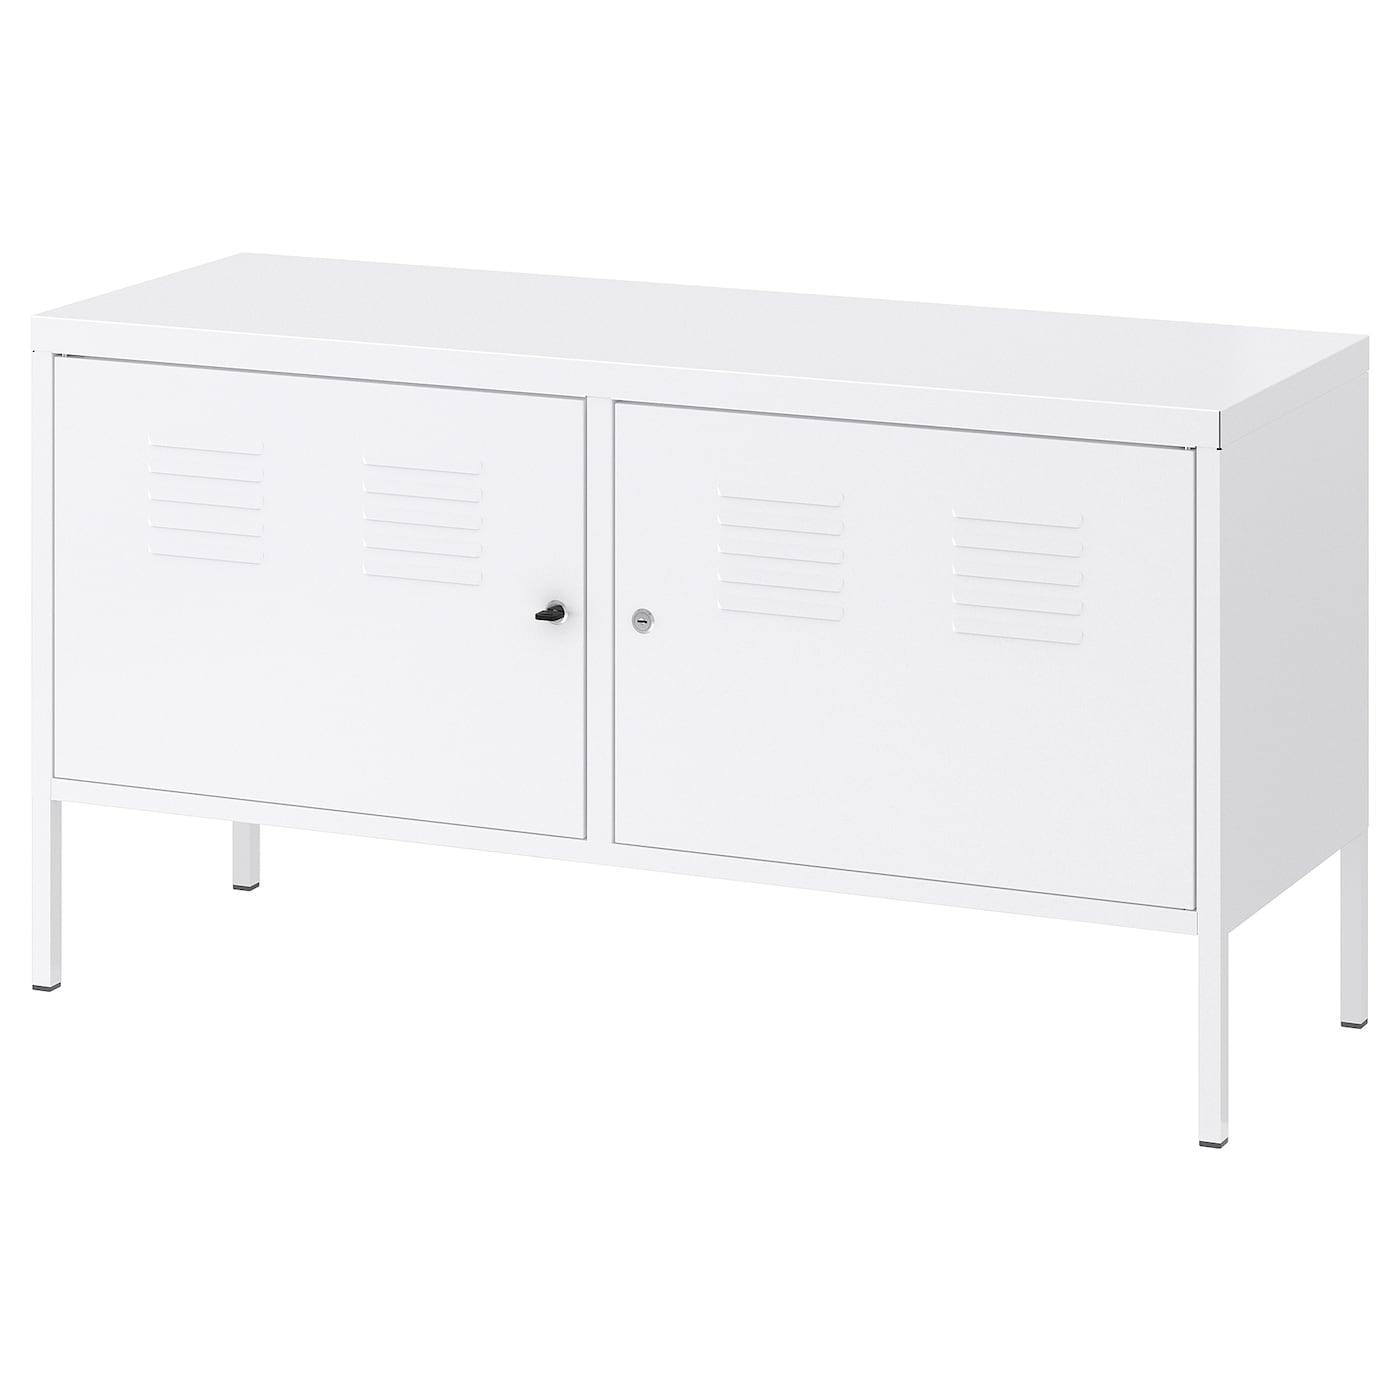 Picture of: Ikea Ps Skab Hvid 119×63 Cm Ikea